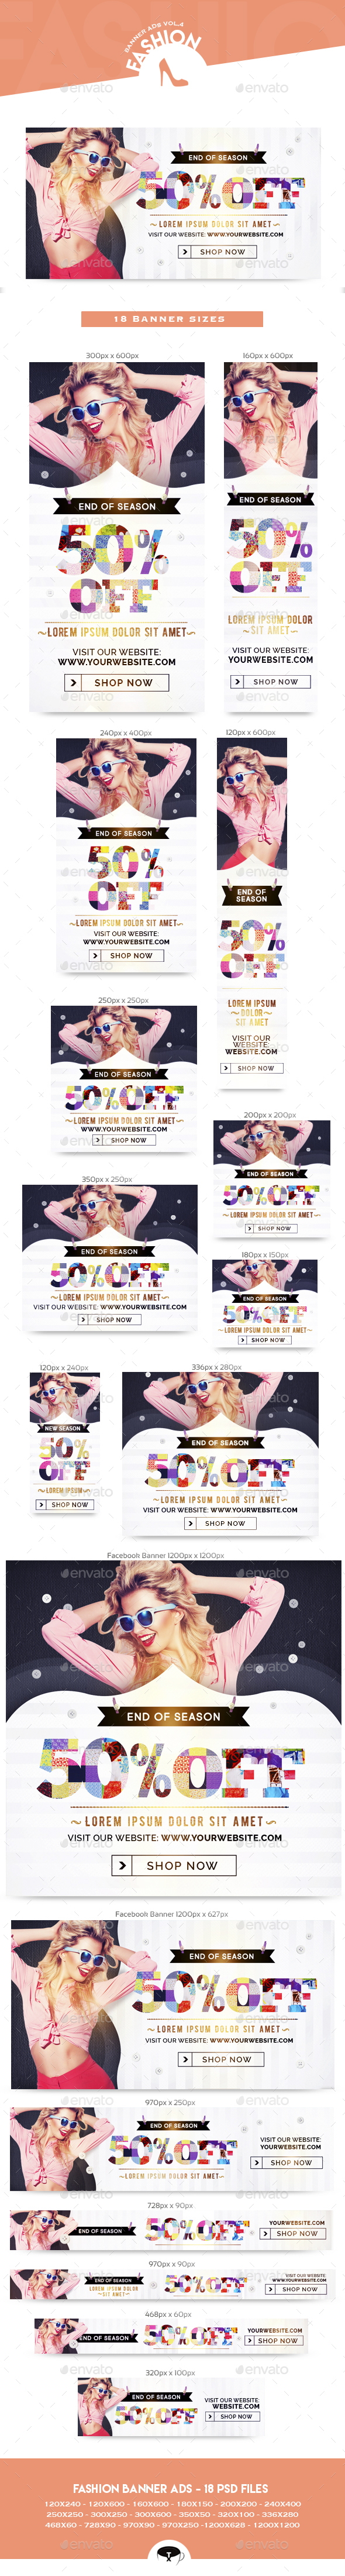 Fashion Banner Ads Vol.3 - Banners & Ads Web Elements